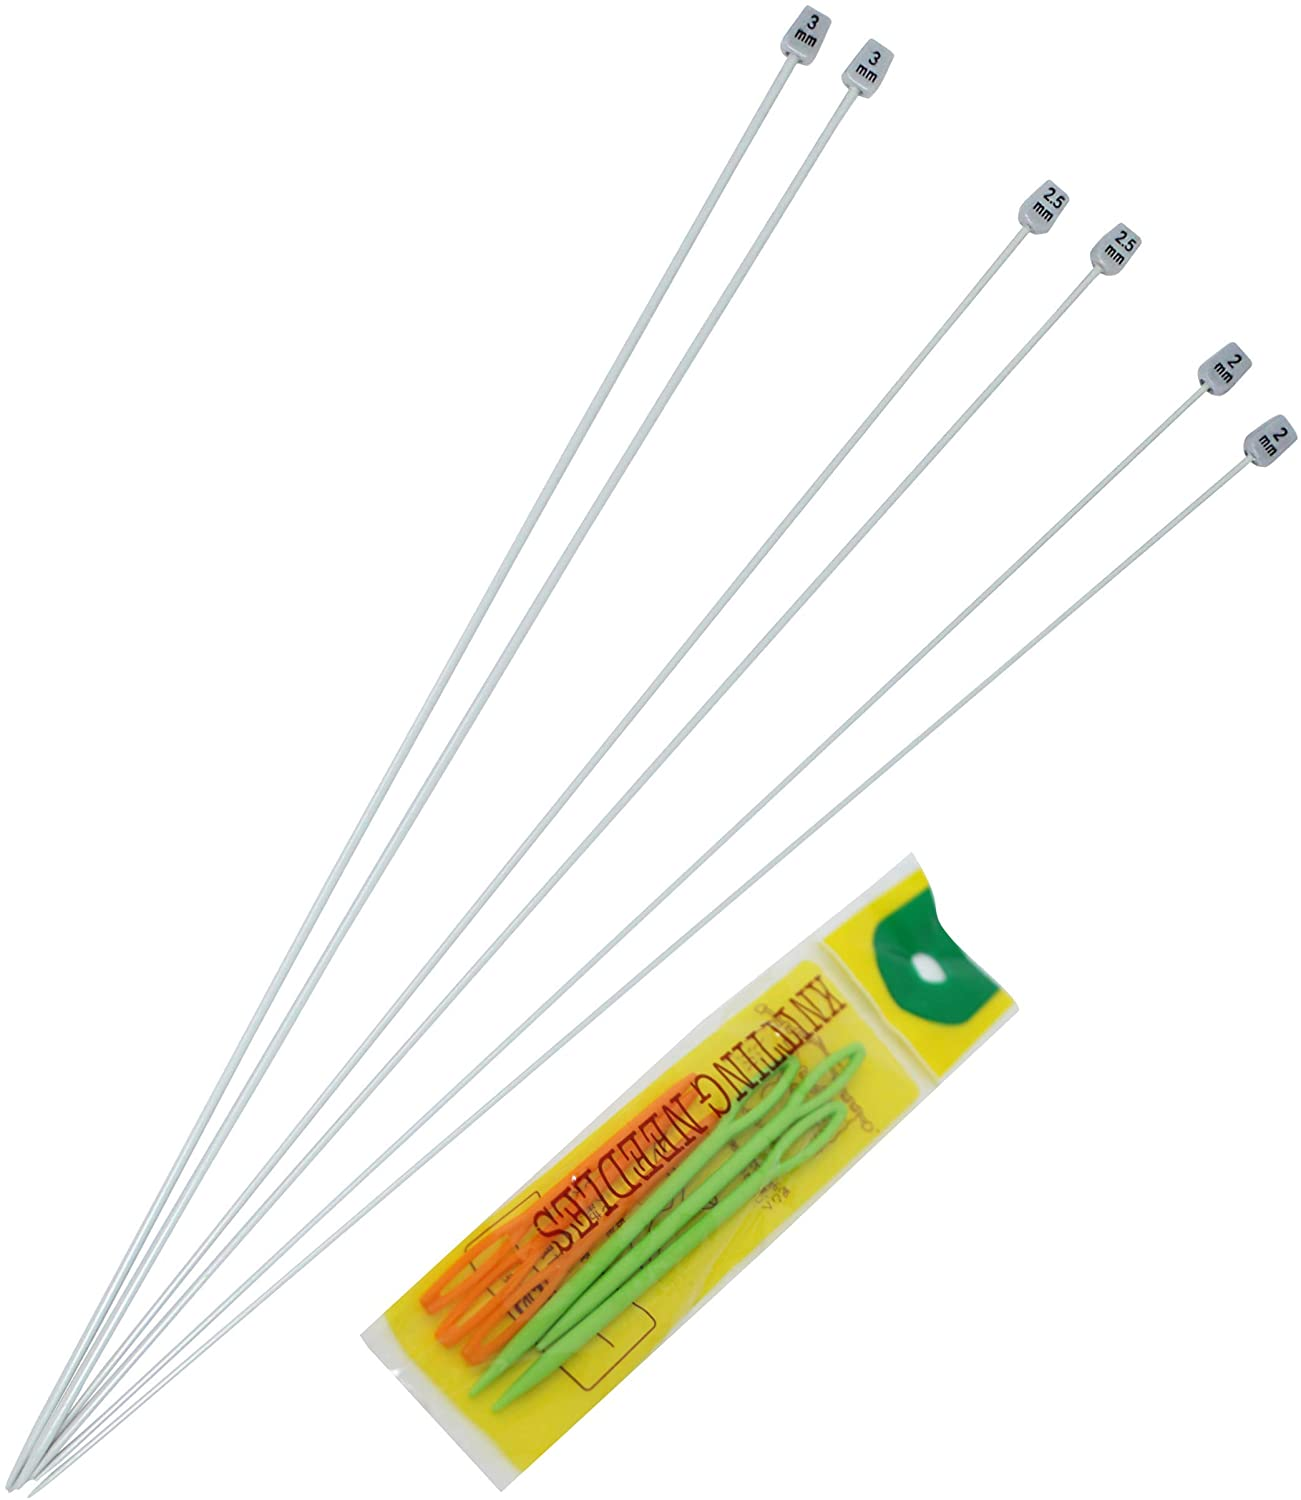 KnitPal 16-inch(40cm) Straight Metal Knitting Needles 3 Paris, US Sizes 0, 1 and 2.5 (2,2.5 and 3mm), Ebook incl.